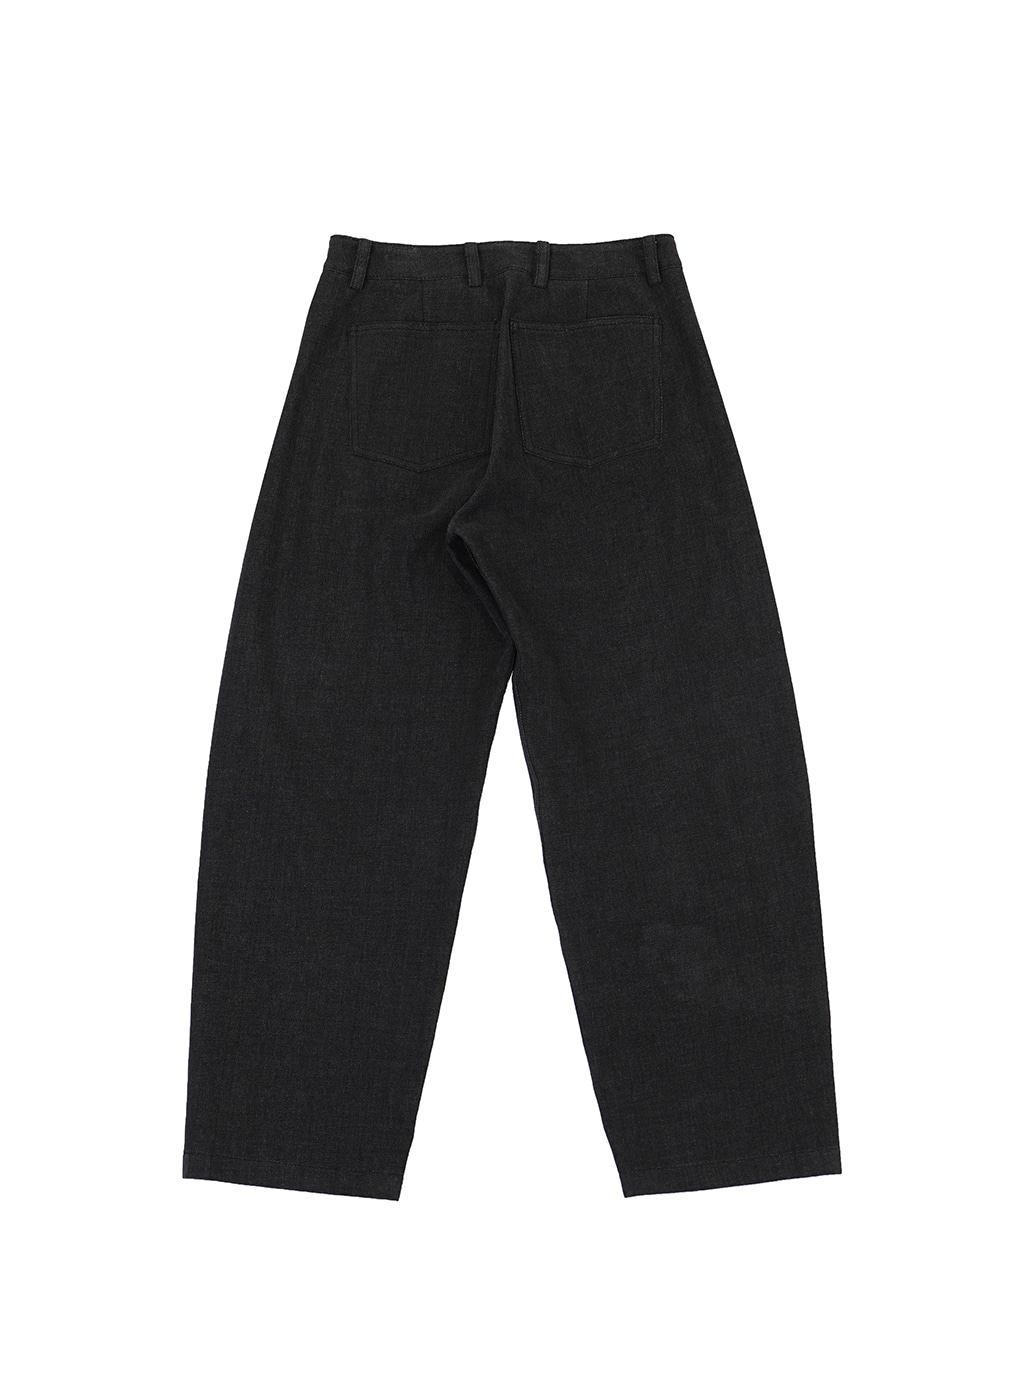 Black Denim Signature Wave Seam Trousers